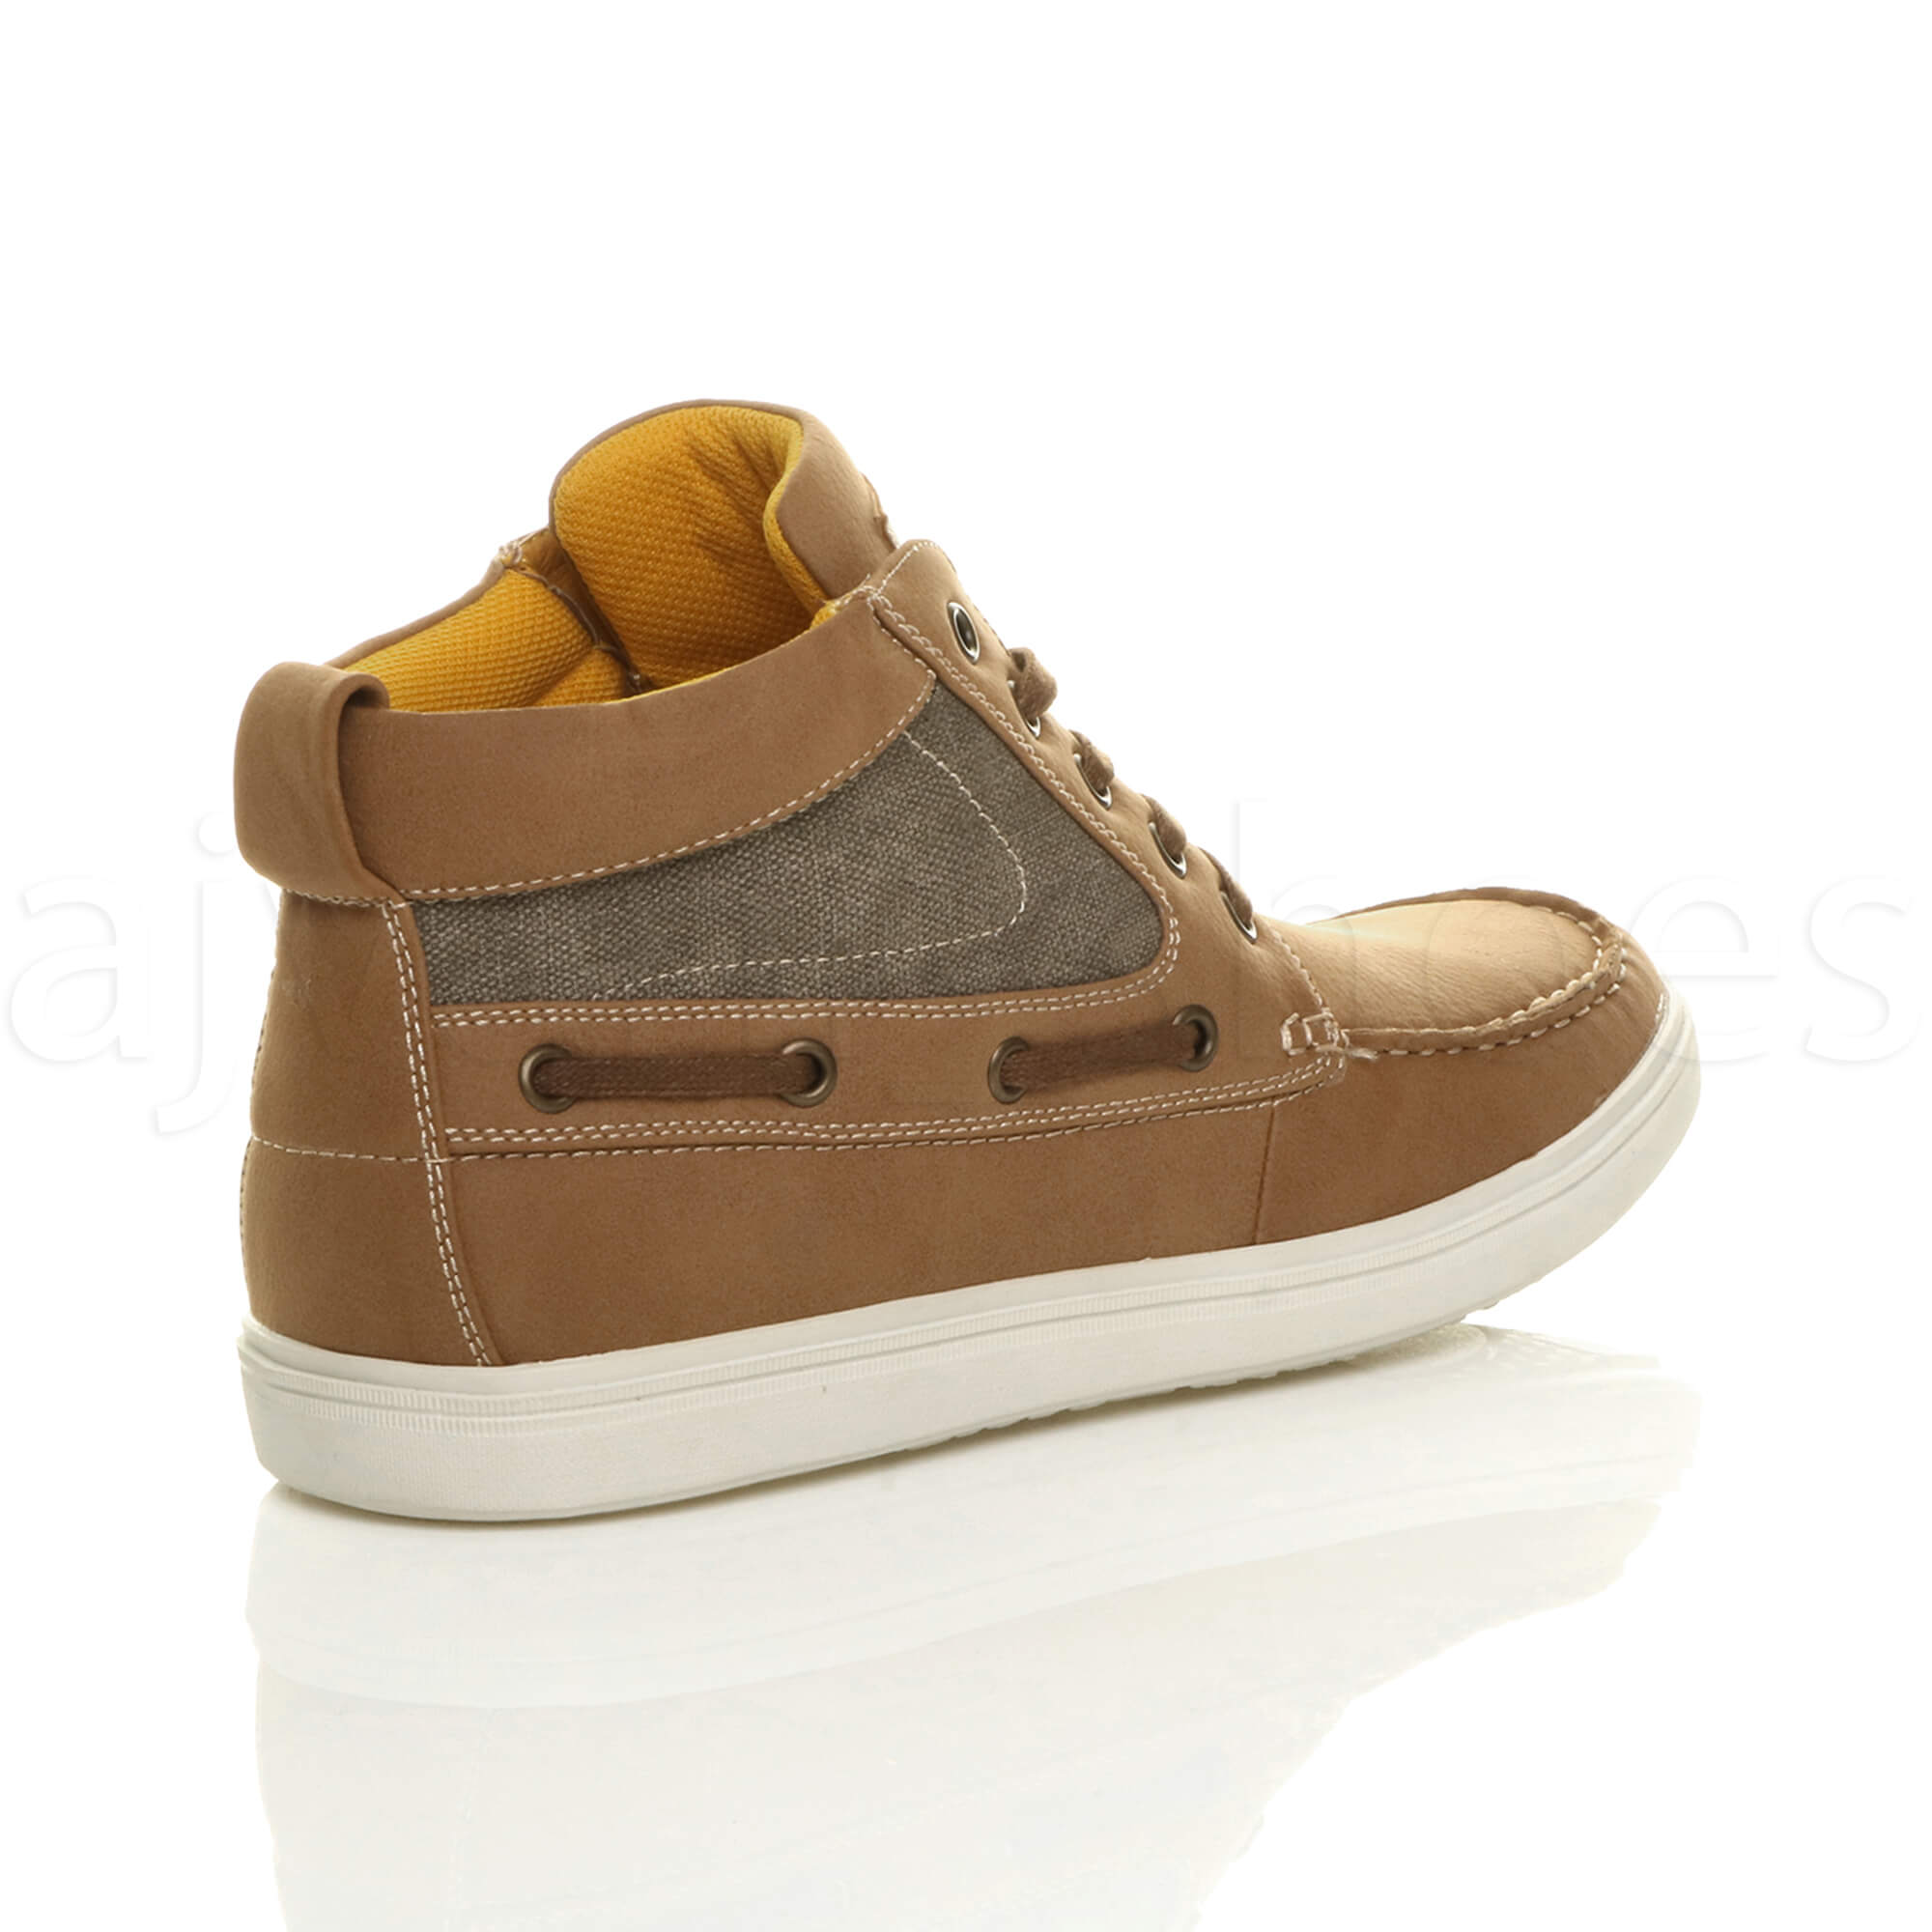 MENS-FLAT-LACE-UP-CASUAL-BOAT-CONTRAST-HI-TOP-TRAINERS-ANKLE-BOOTS-PUMPS-SIZE thumbnail 12